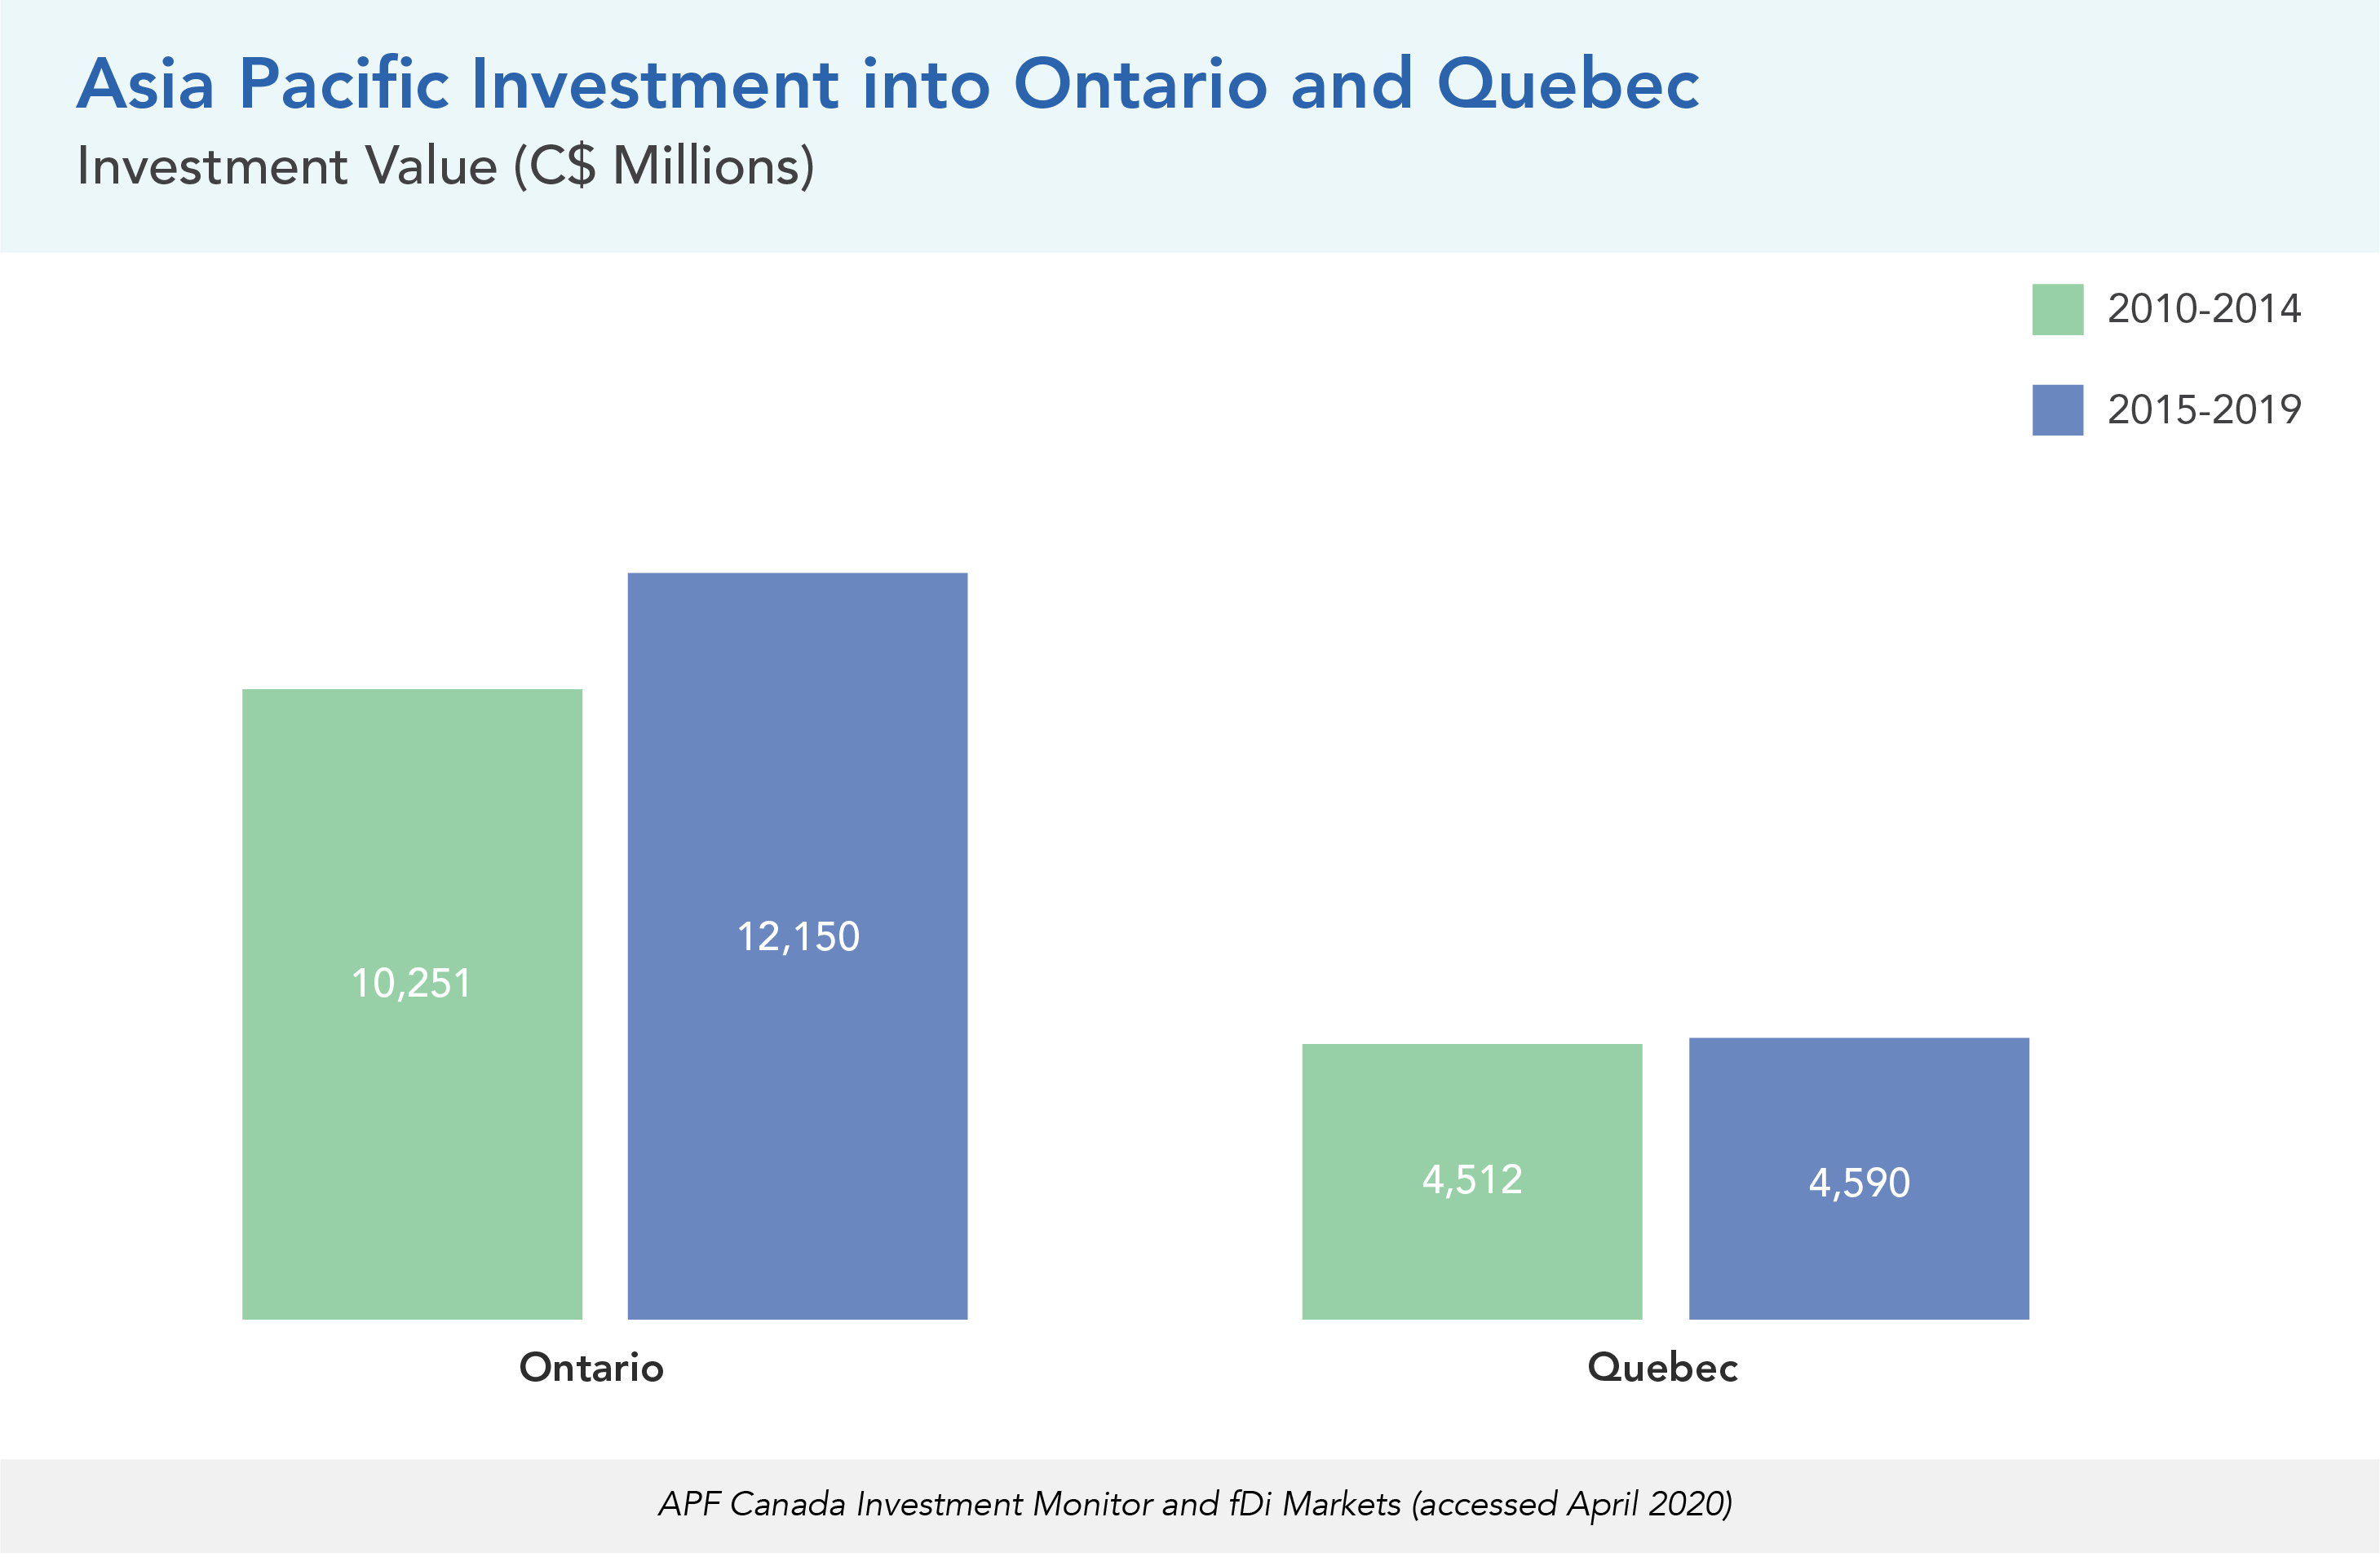 Asia Pacific Investment into Ontario and Quebec